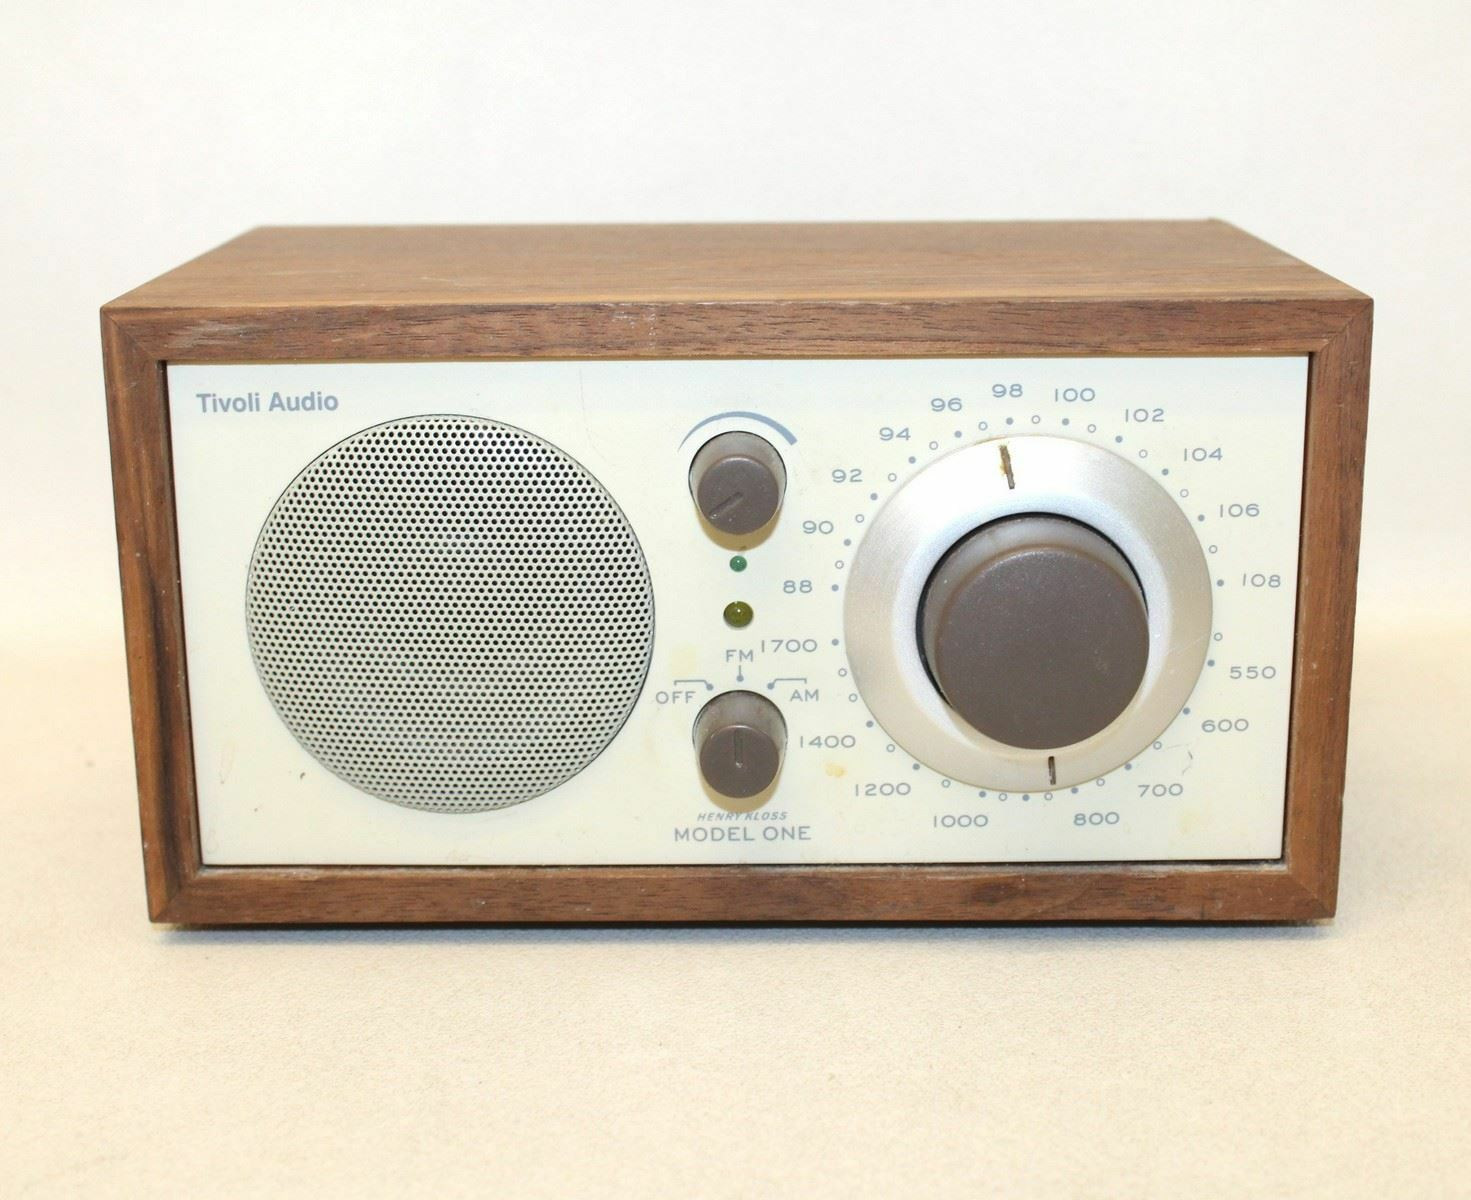 tivoli audio by henri kloss model one am fm wood cabinet table top radio picclick uk. Black Bedroom Furniture Sets. Home Design Ideas